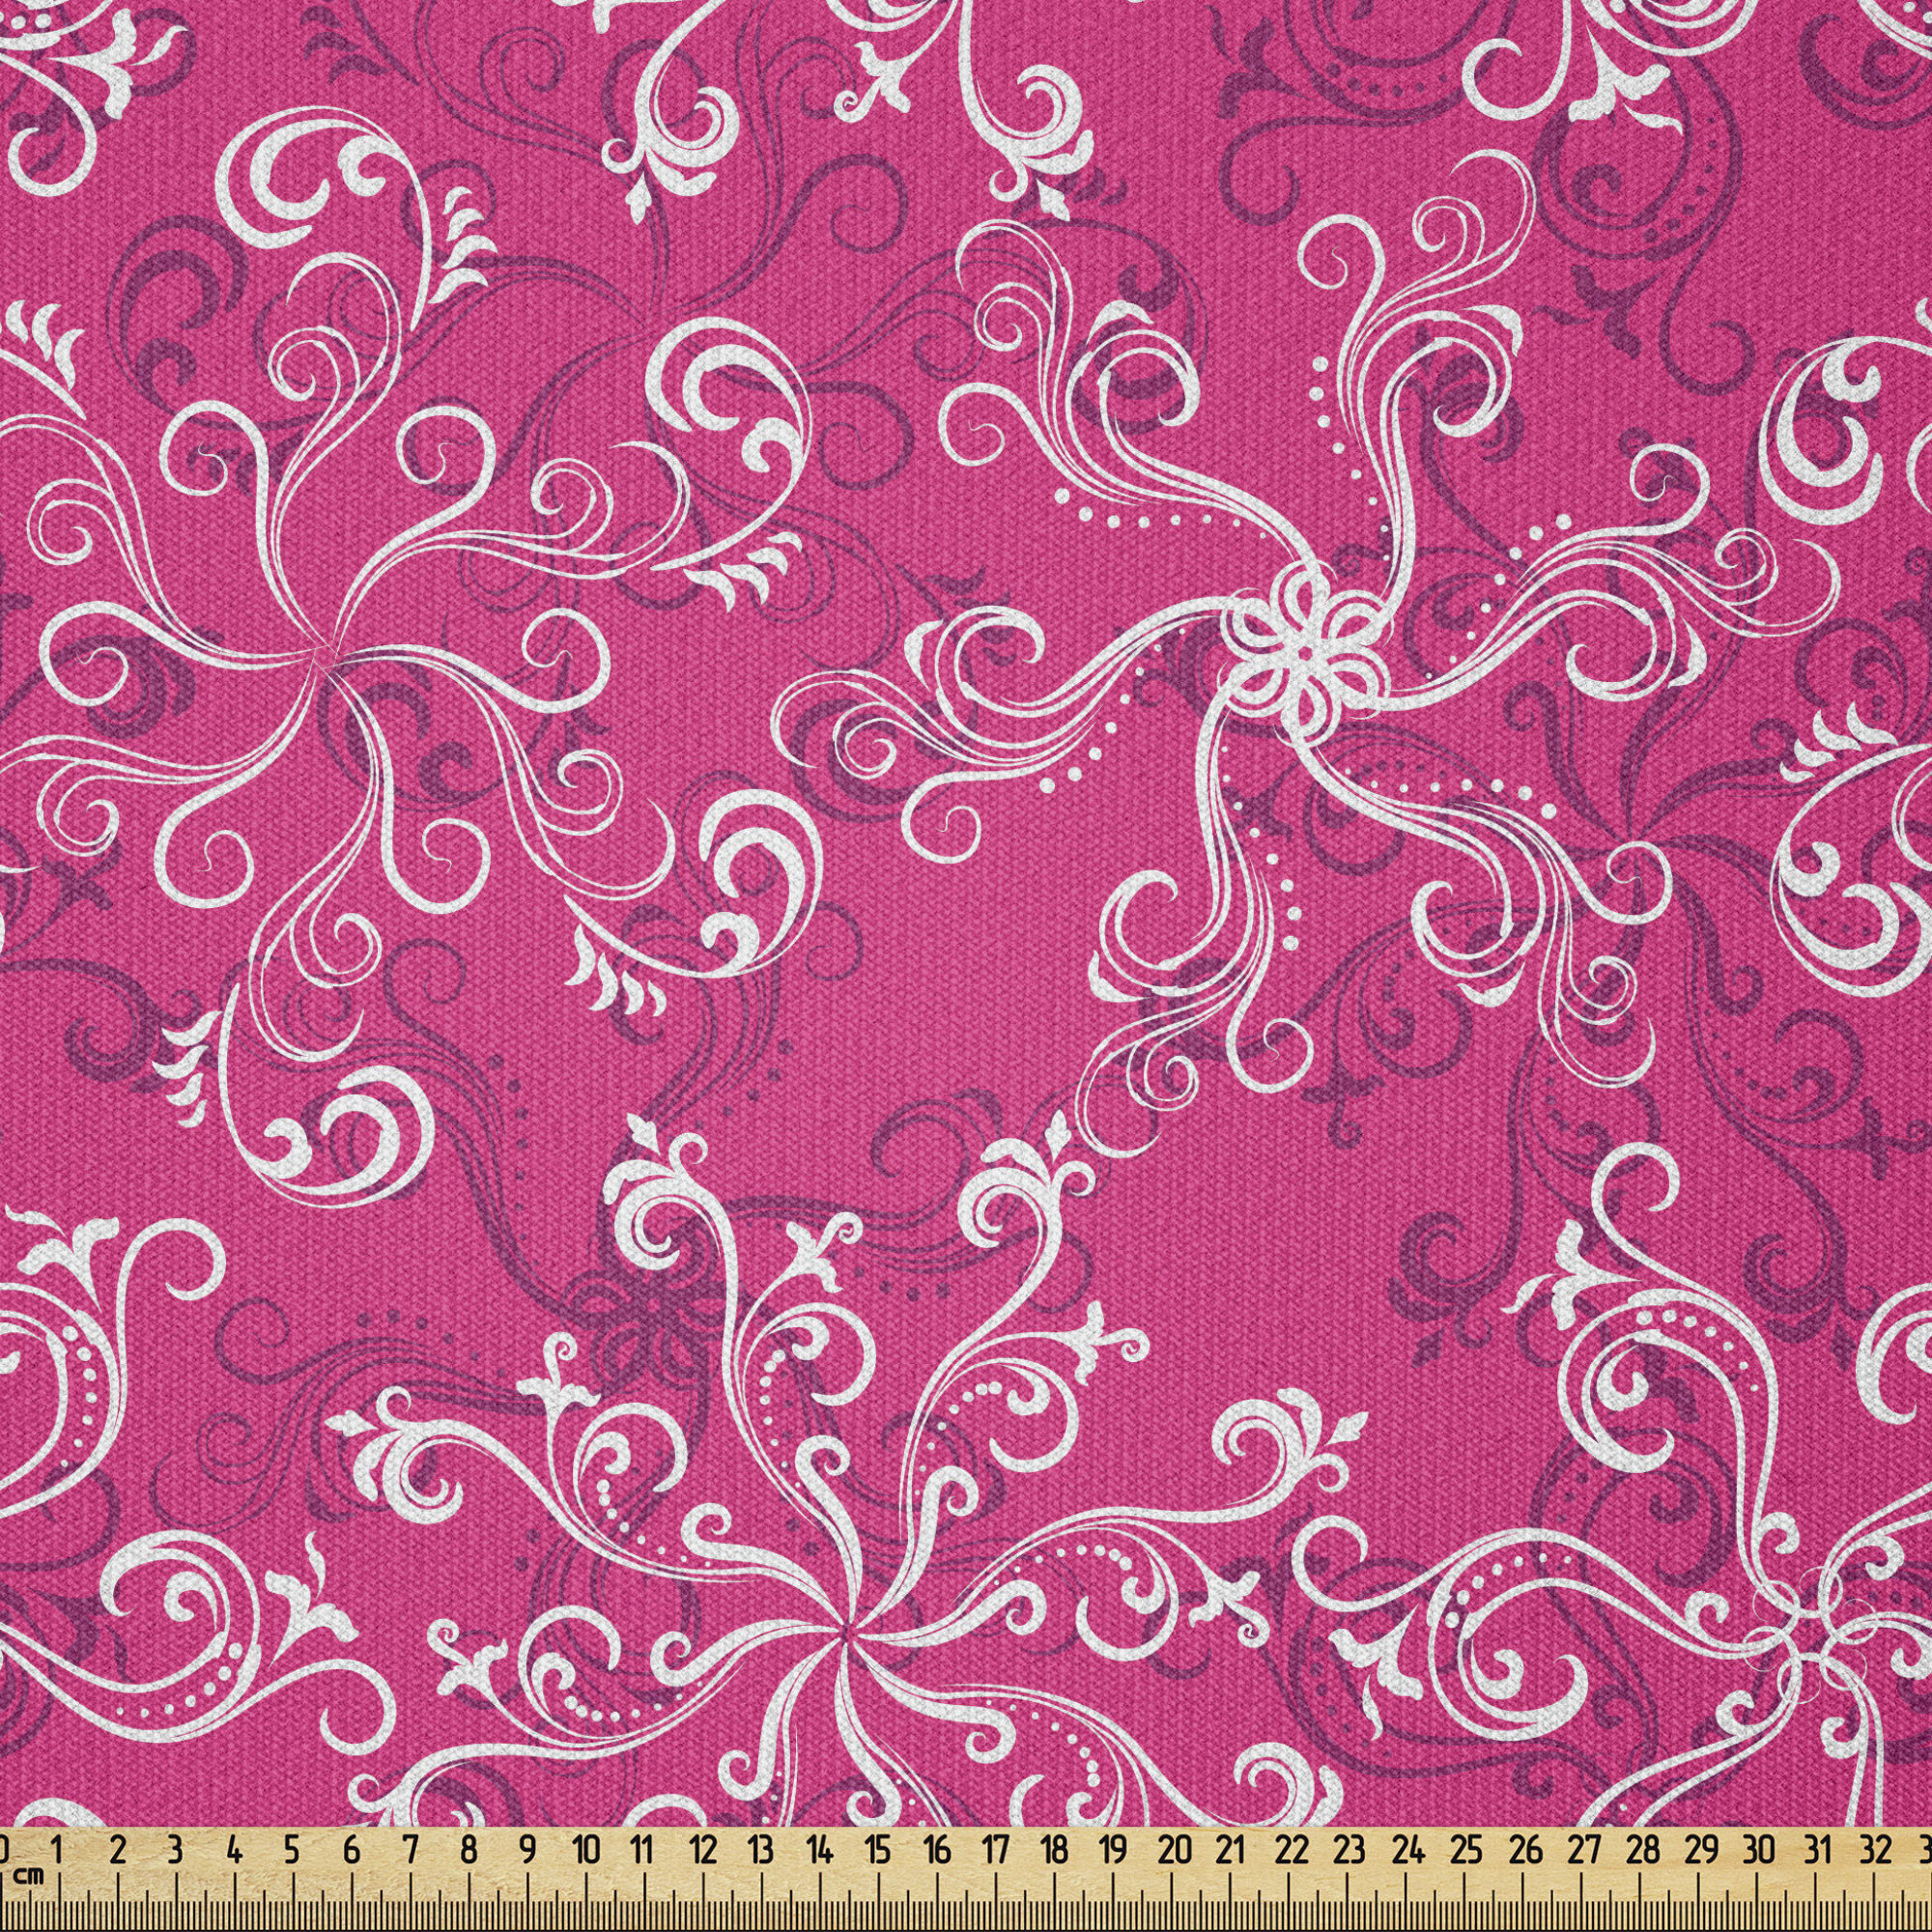 Pink chair fabric 9 plus yards Pink white fabric Pink Upholstery fabric